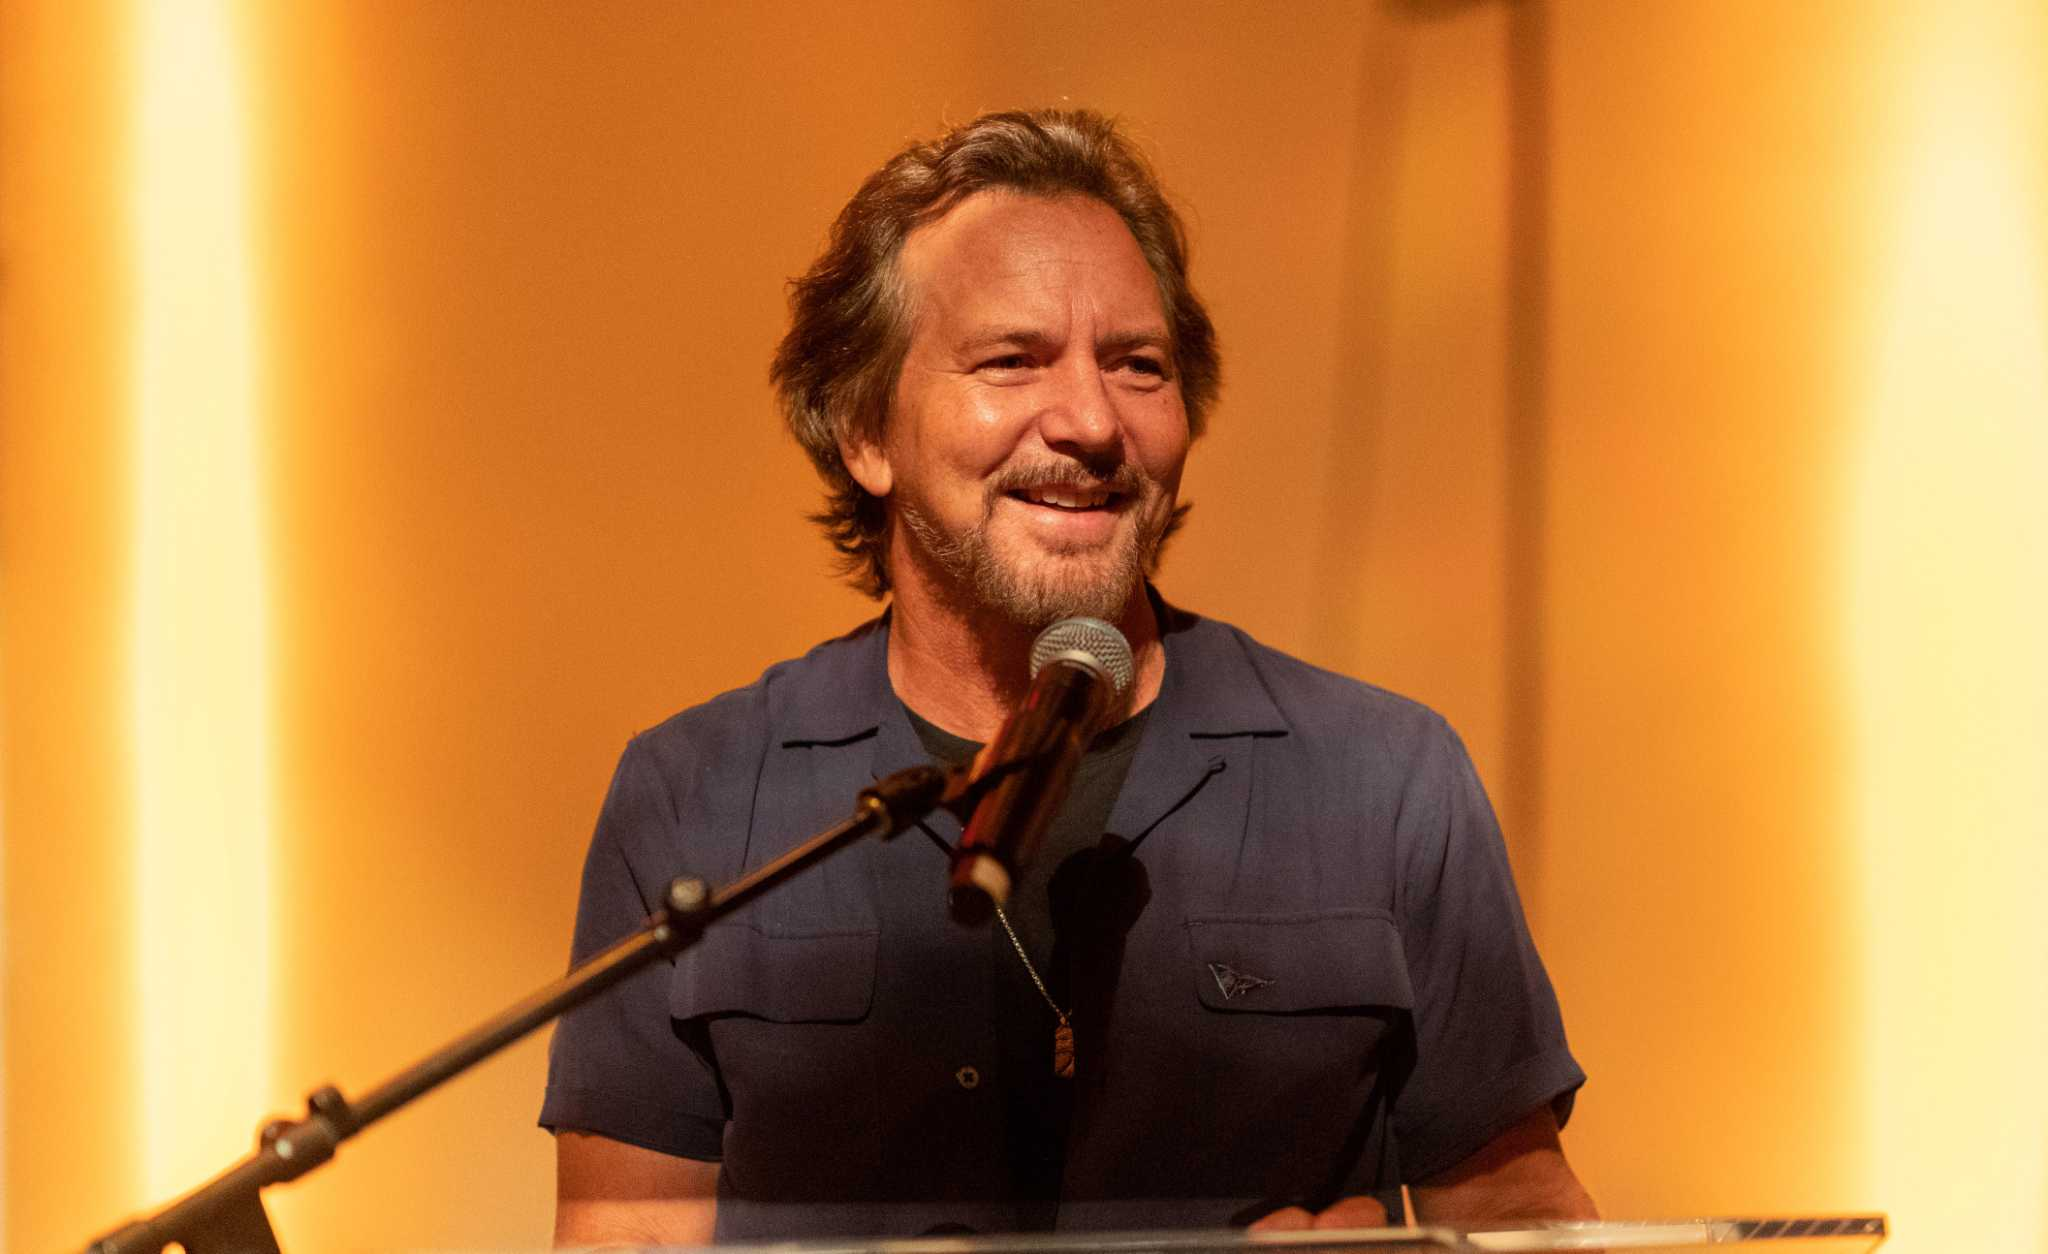 Eddie Vedder Unveils Pearl Jam S New Album Gigaton At